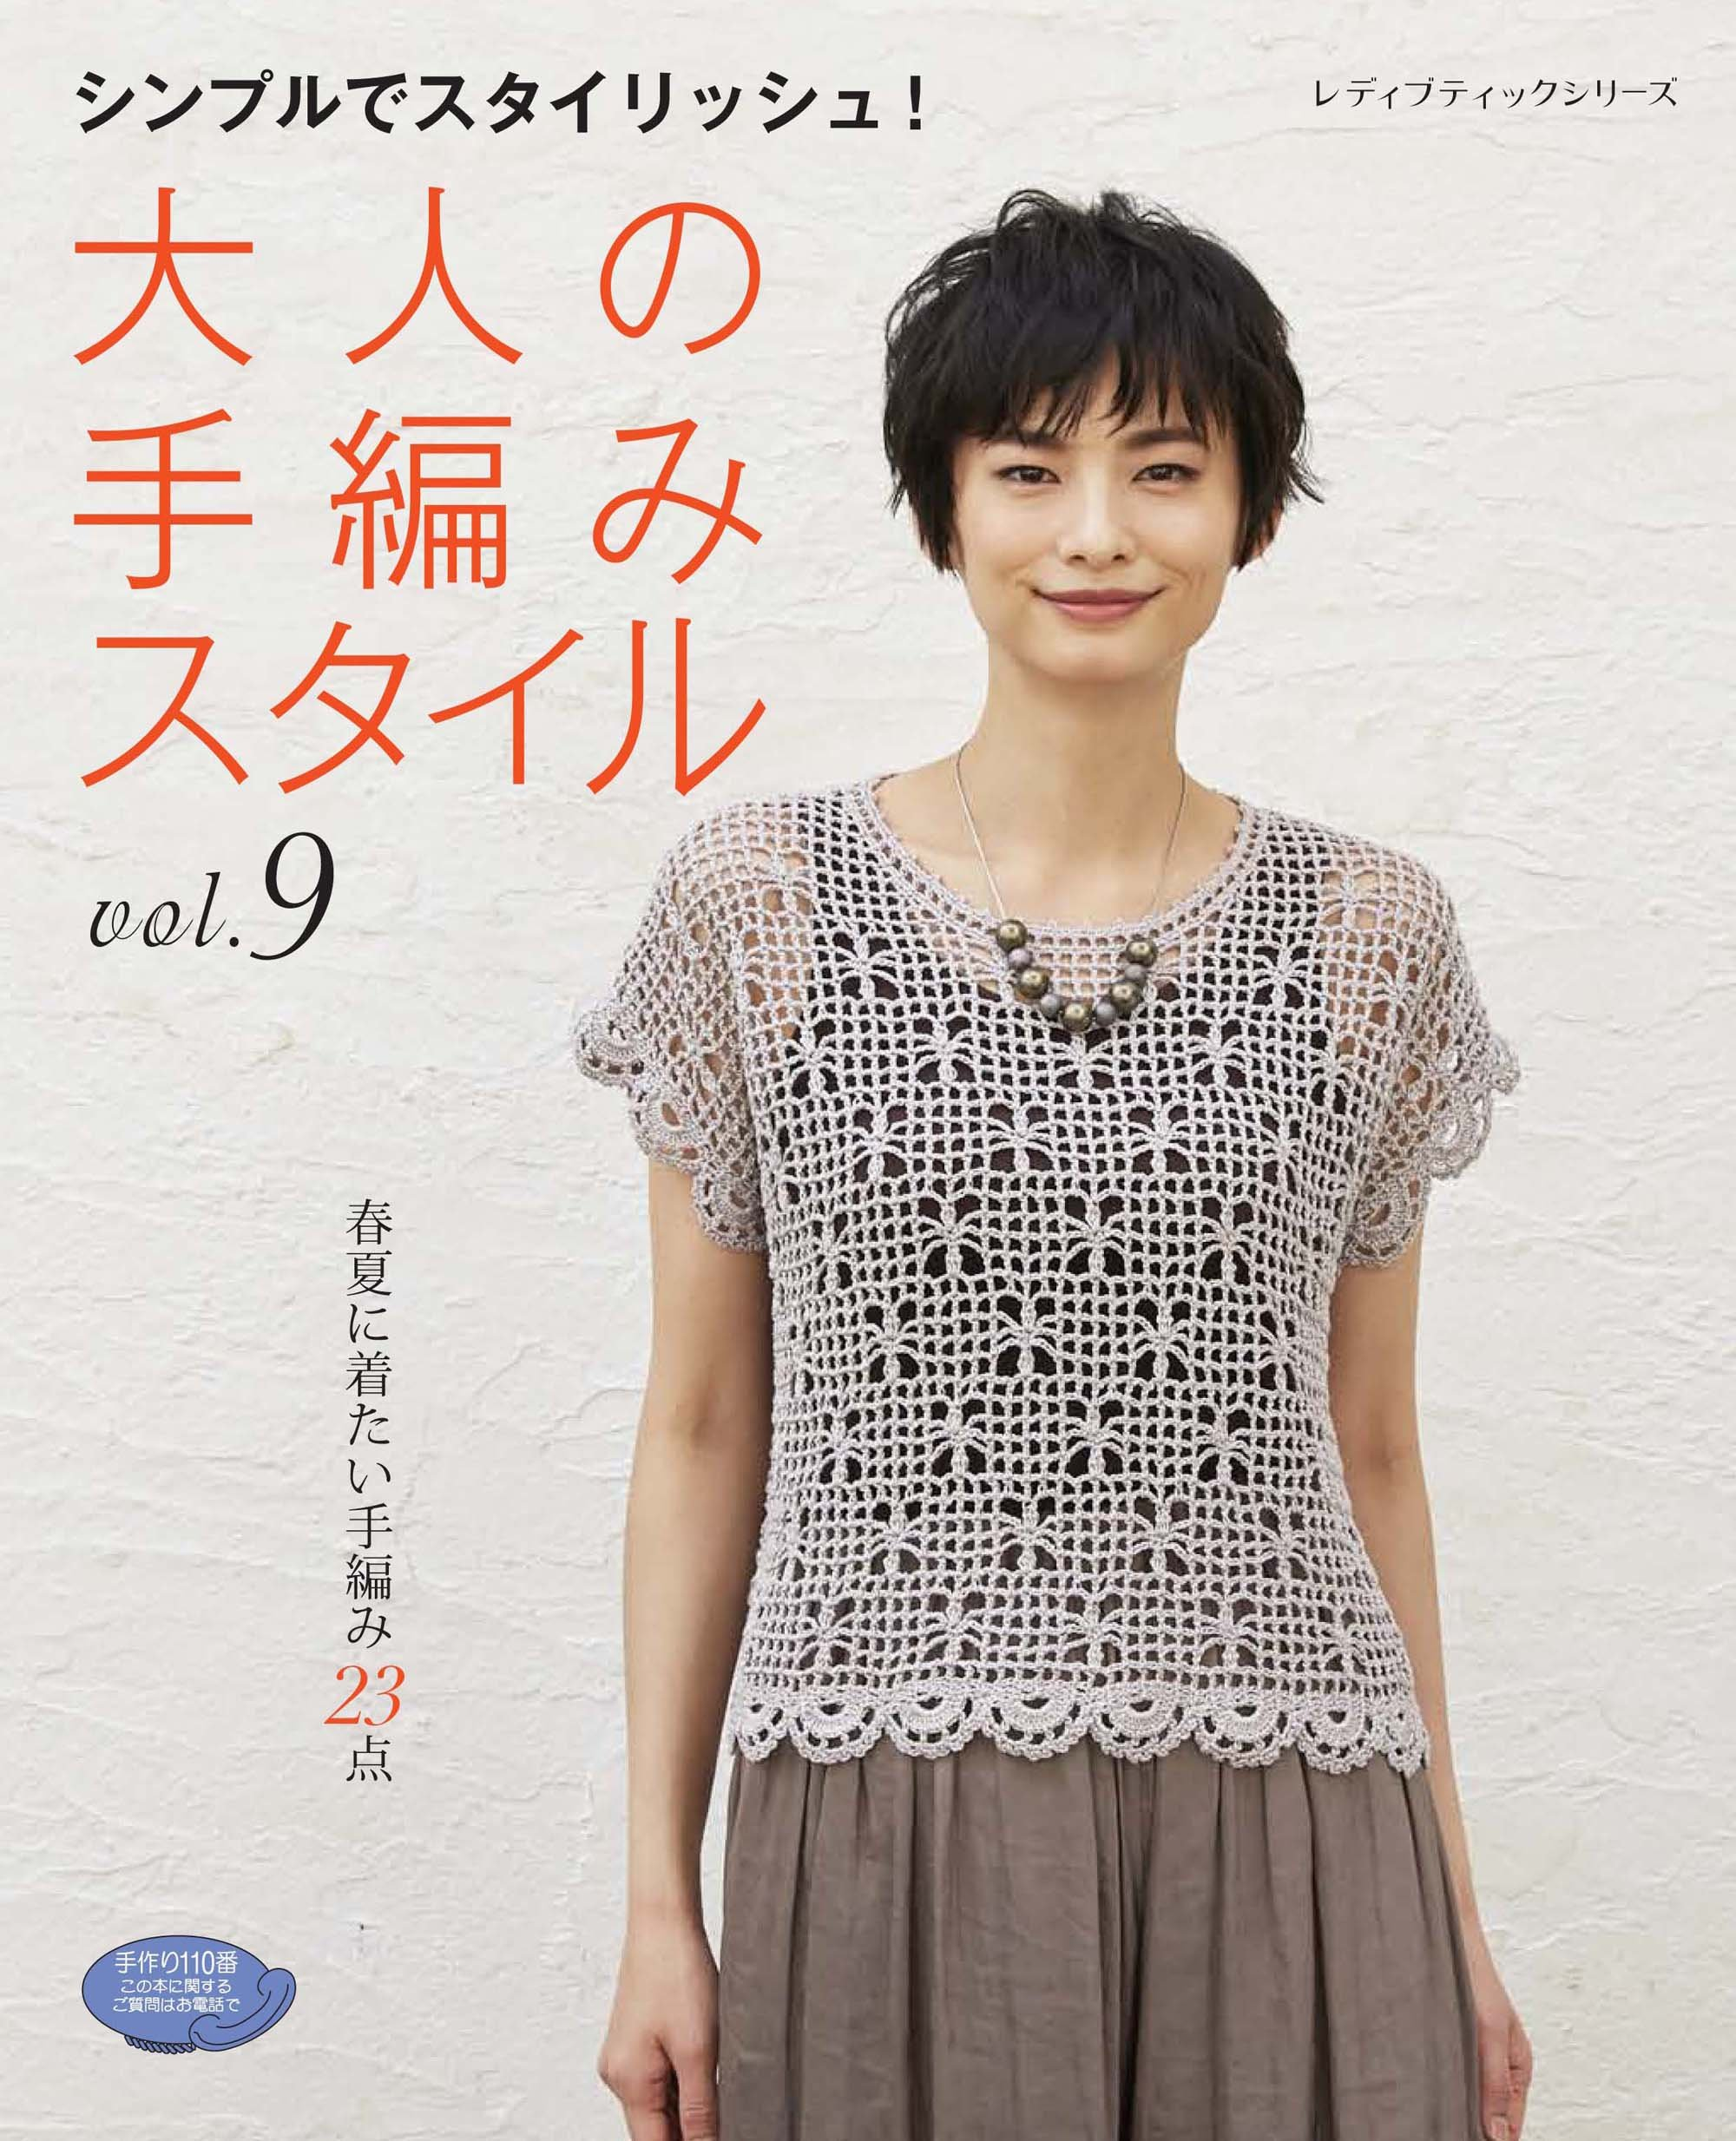 Adult hand-knitted style vol.9